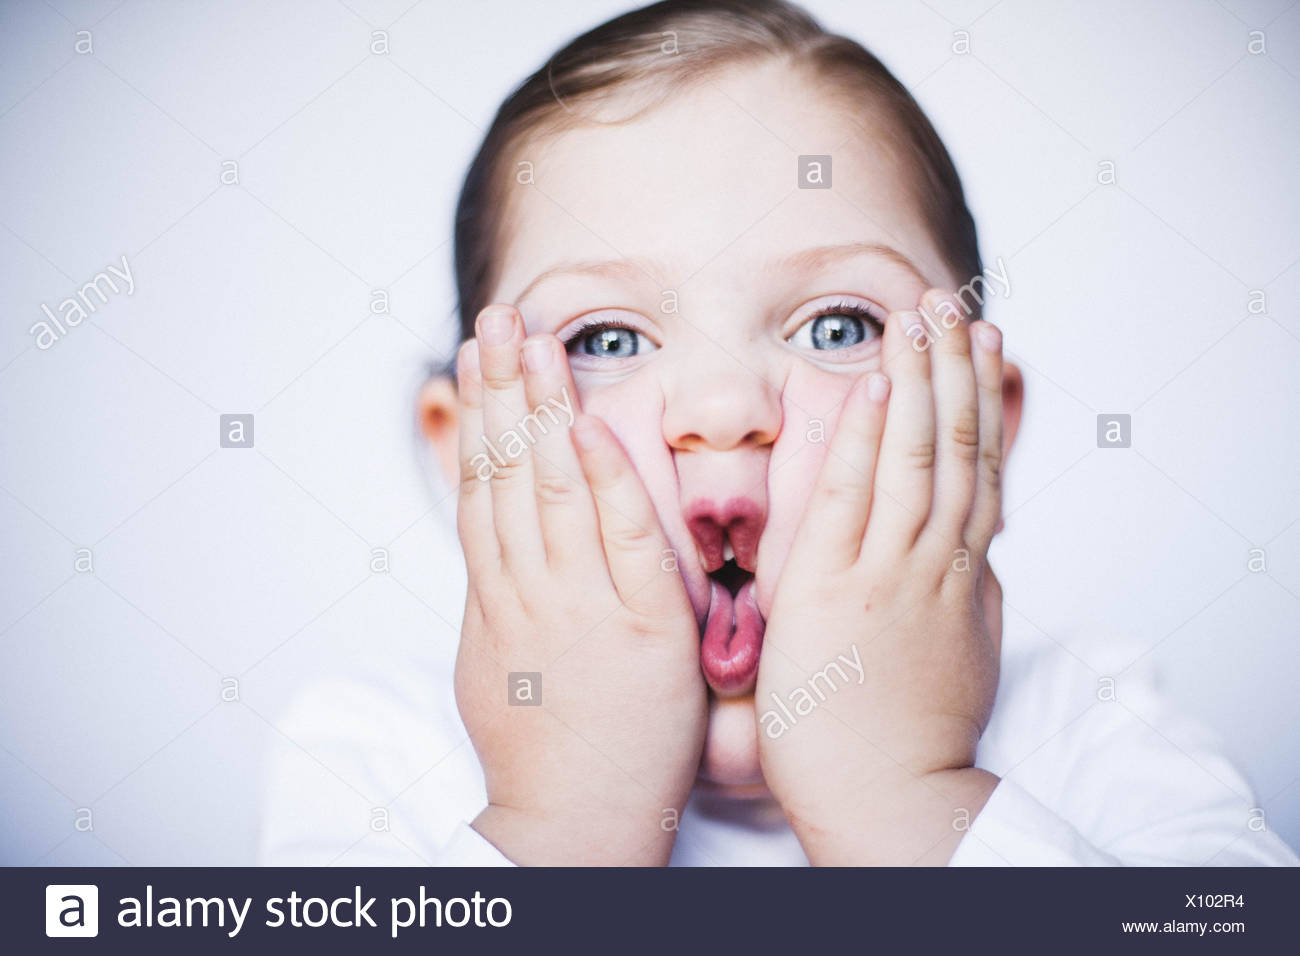 Portrait of a girl squashing her cheeks together making a funny face - Stock Image